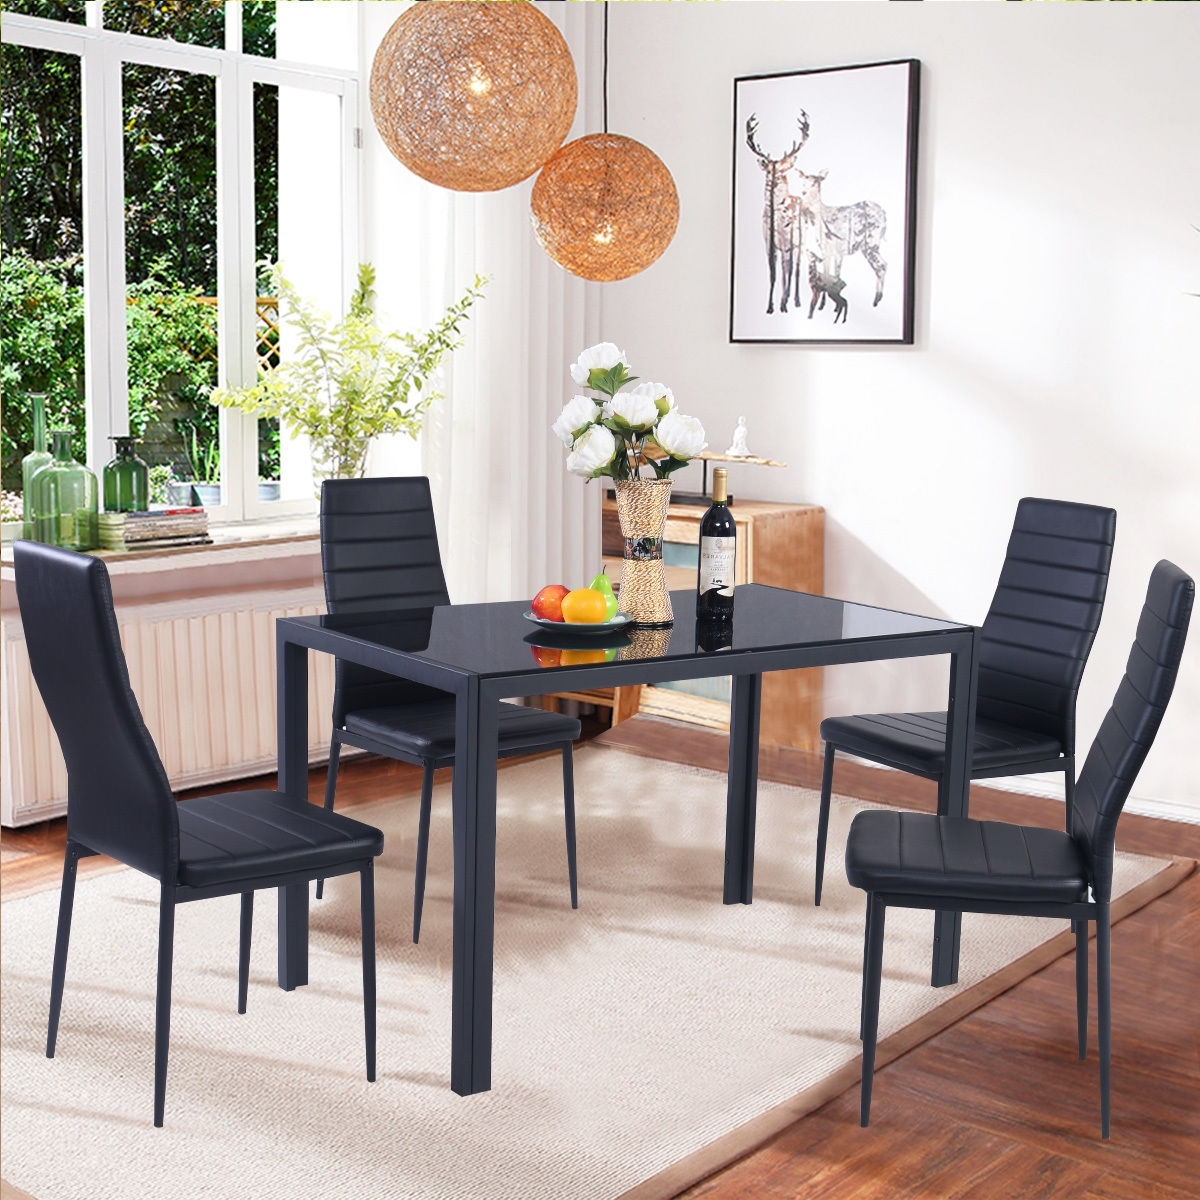 4 Seat Dining Tables in Well known Costway 5 Piece Kitchen Dining Set Glass Metal Table And 4 Chairs